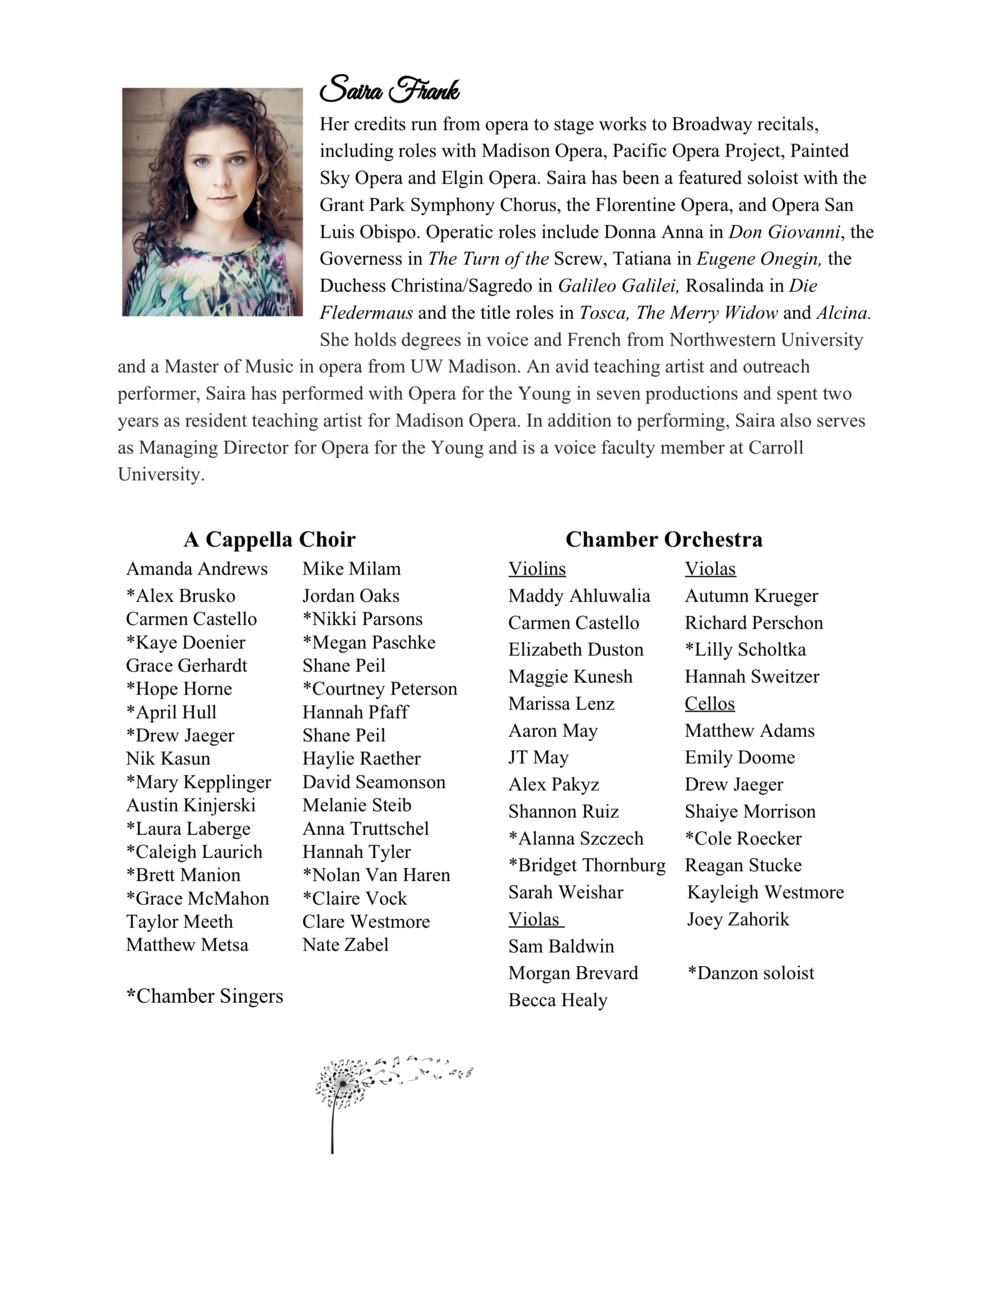 Mosaic Program Roster.png